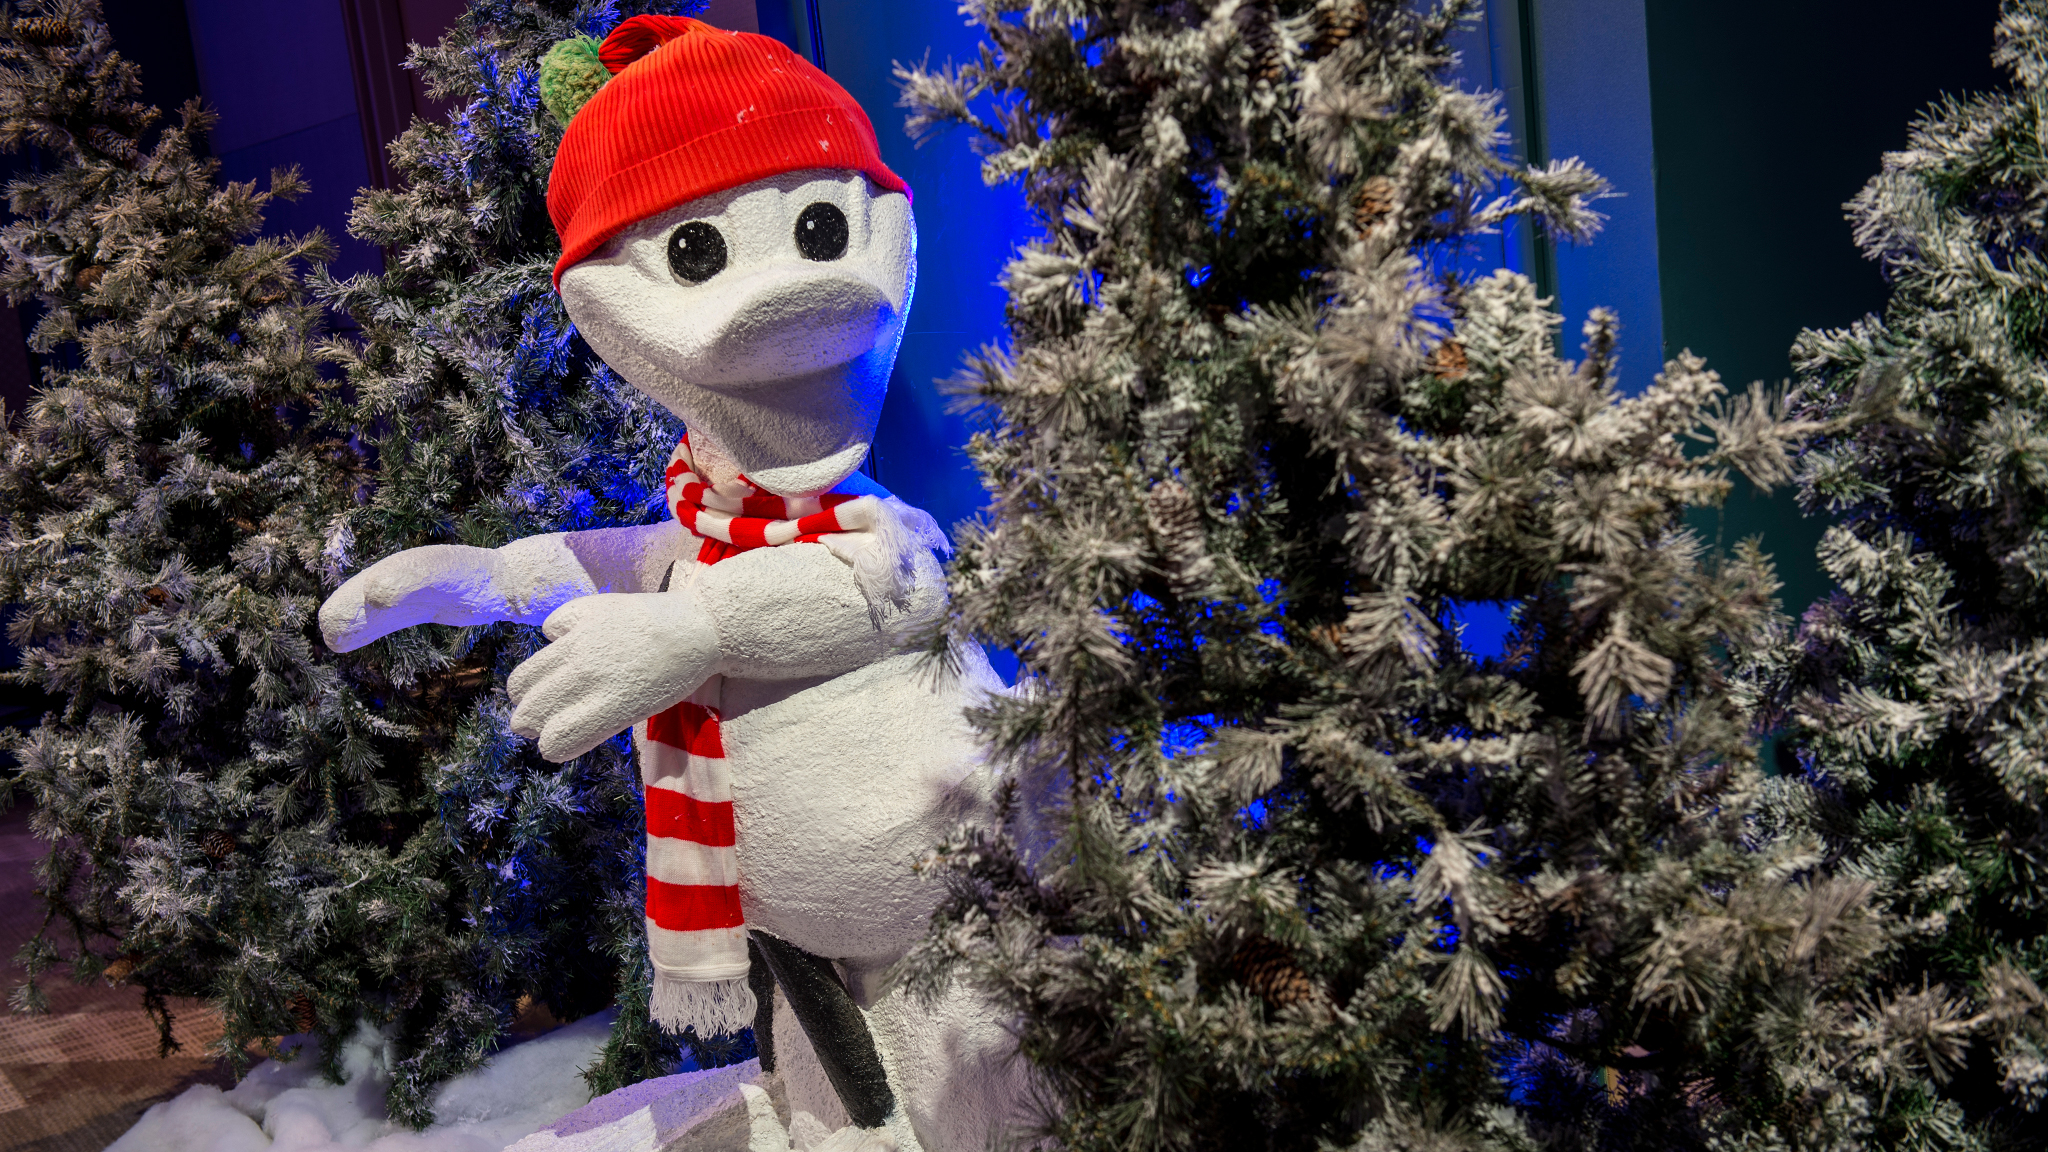 A Donald Duck snowman and pine tree decorations